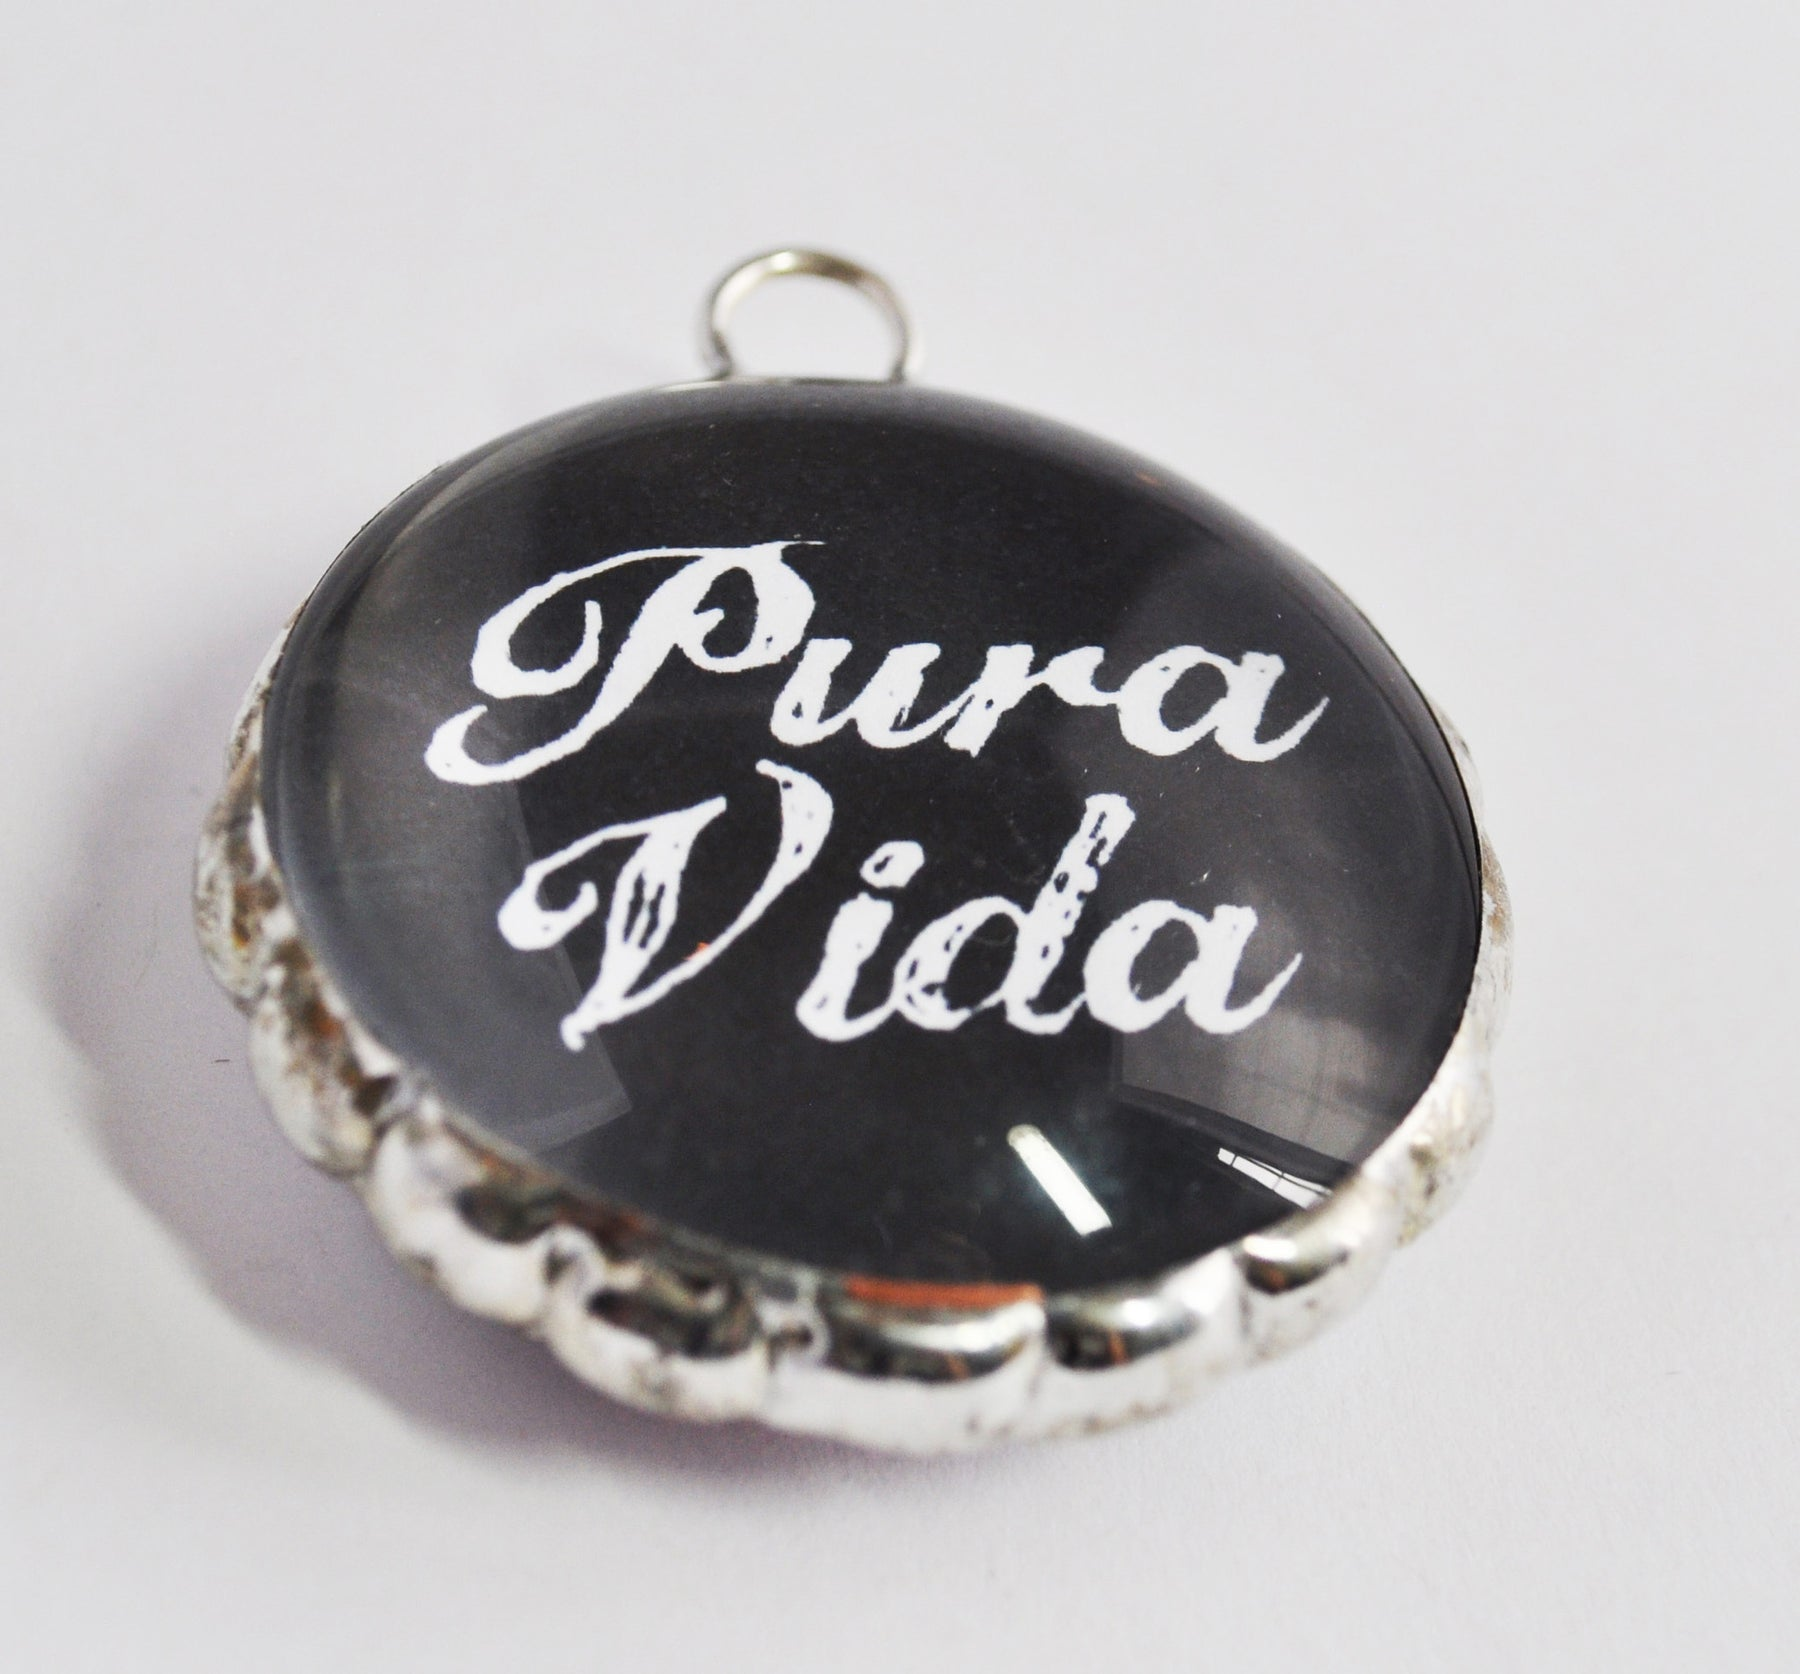 Mexican necklace vintage jewelry soldered pendant aloadofball Images